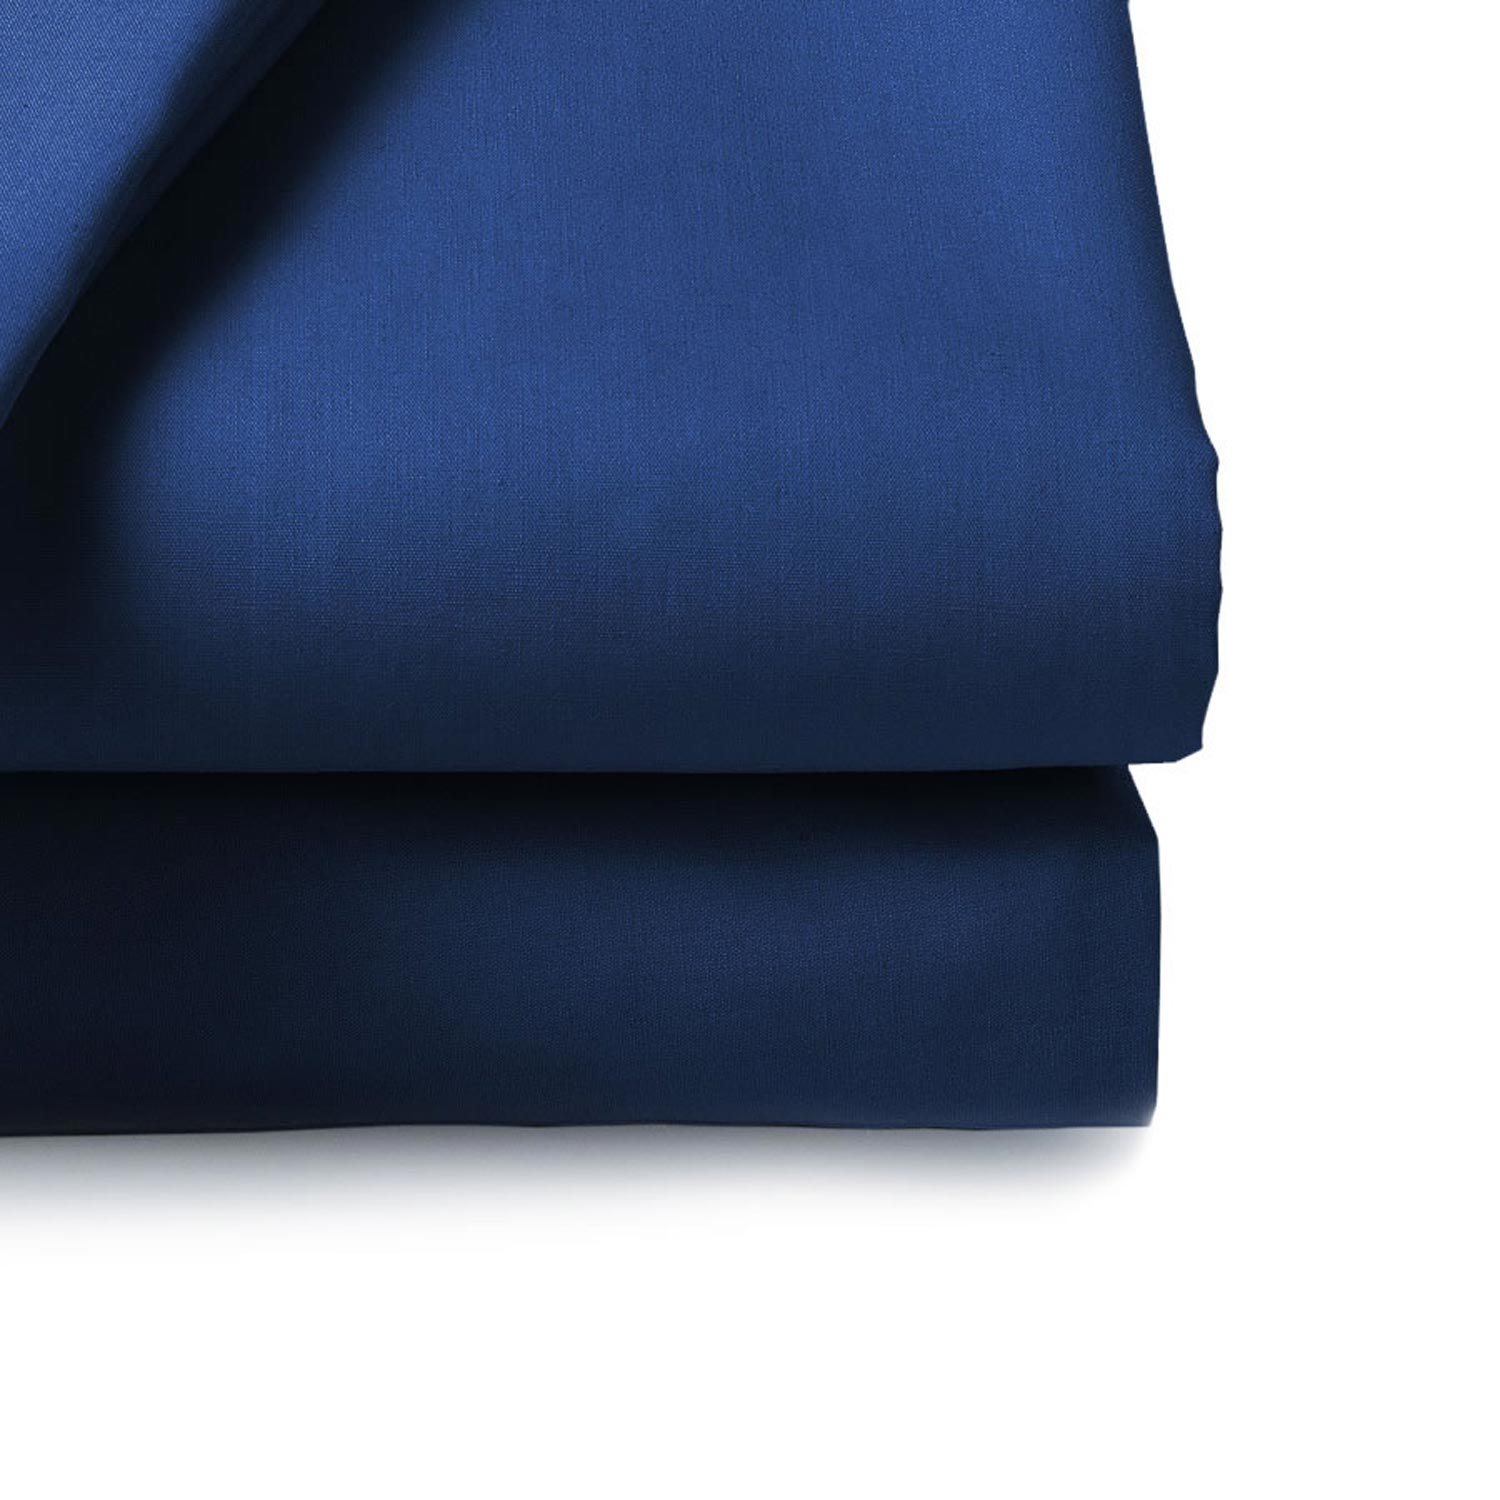 Image of Belledorm 200 Thread Count Fitted Sheet, King , Navy